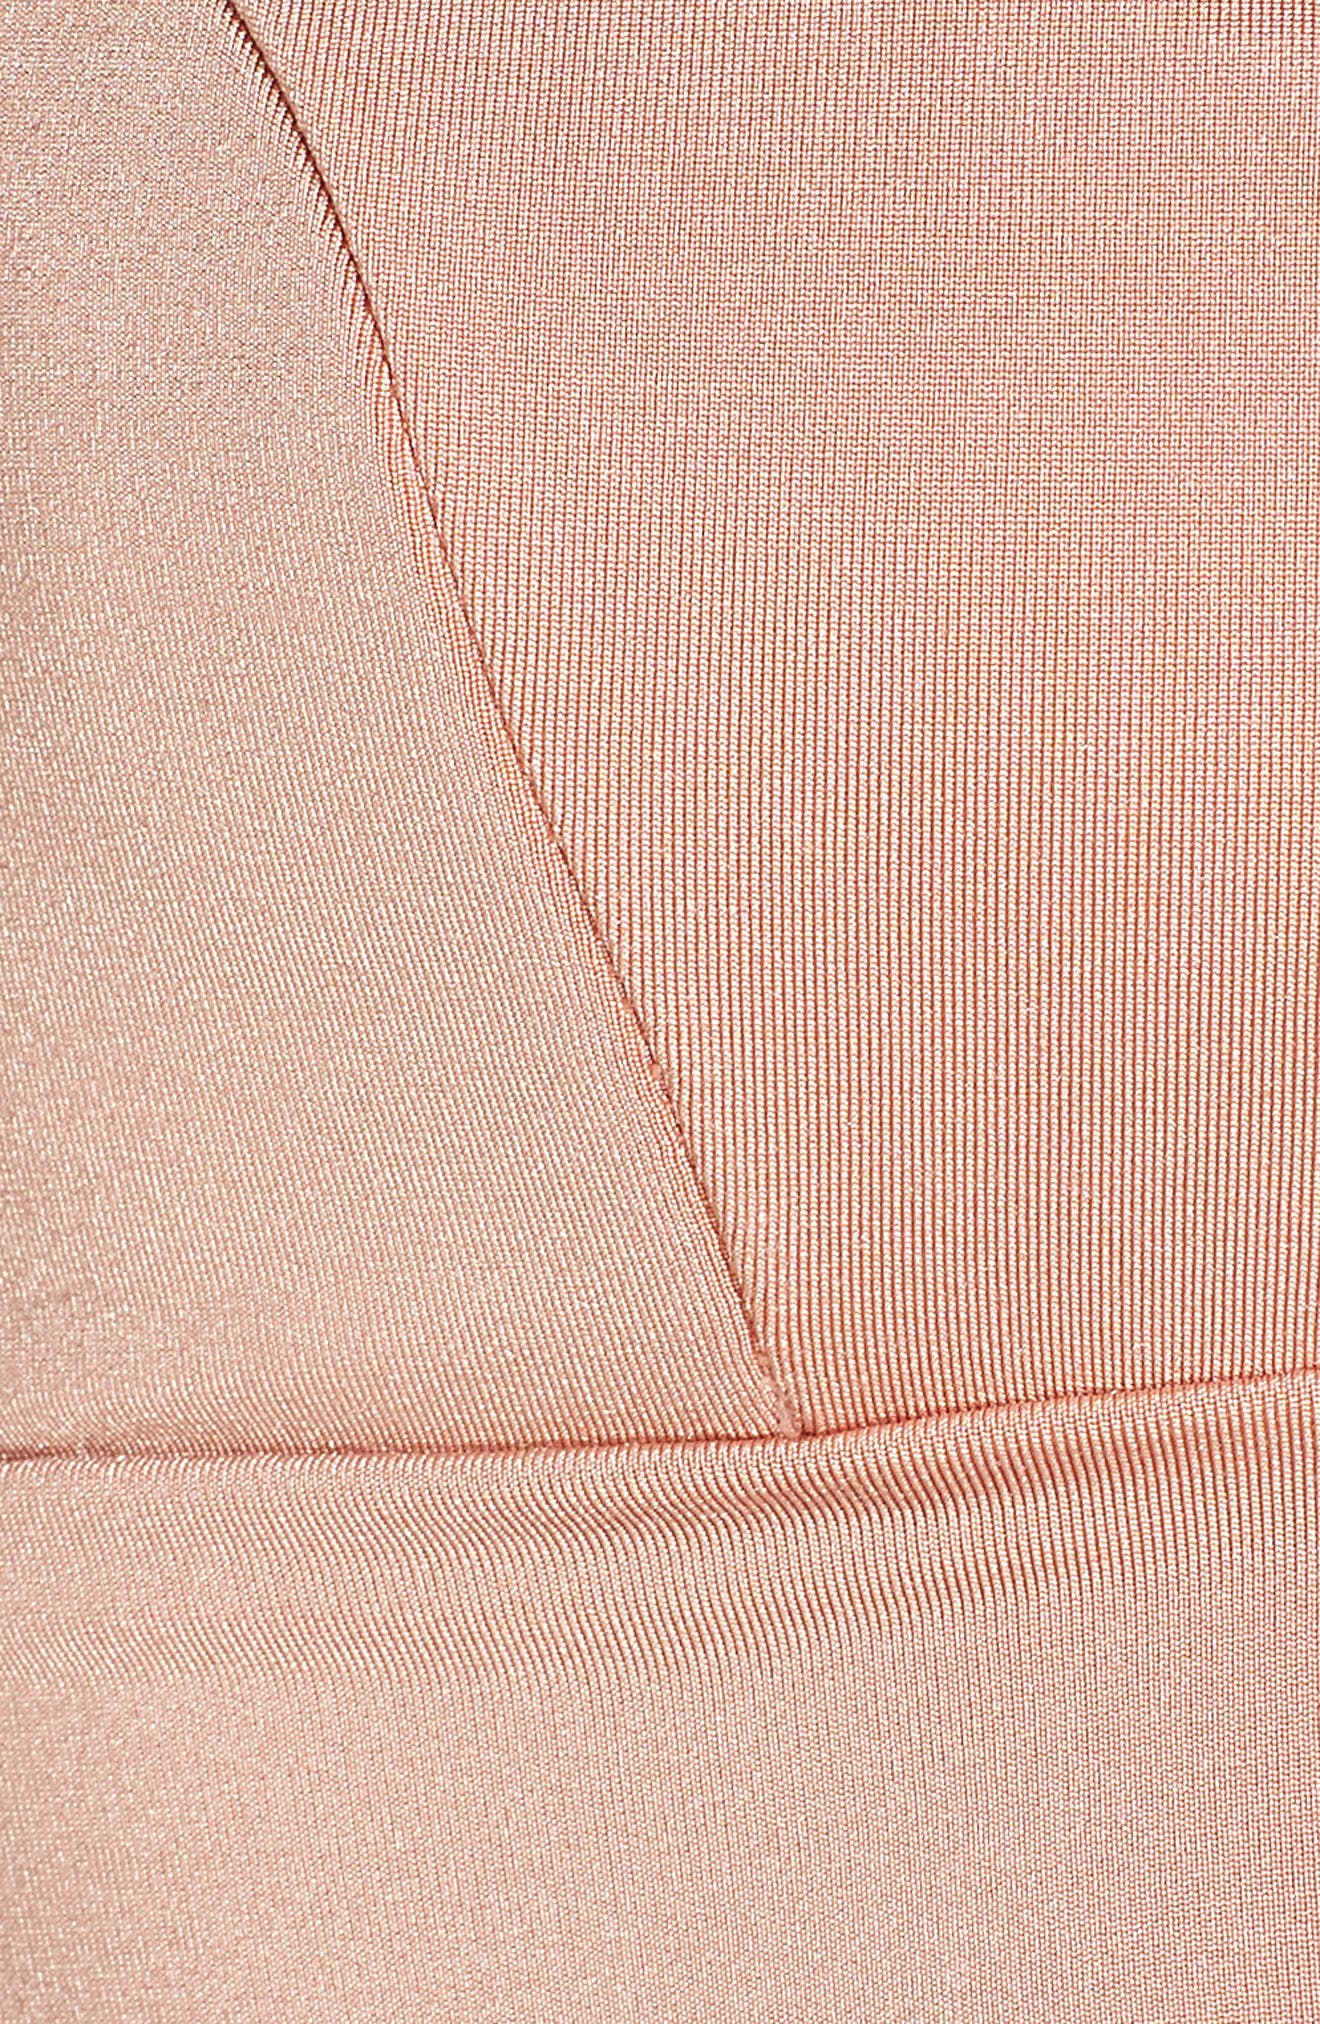 Dizzy Izzy Bikini Top,                             Alternate thumbnail 5, color,                             Blush & Bashful